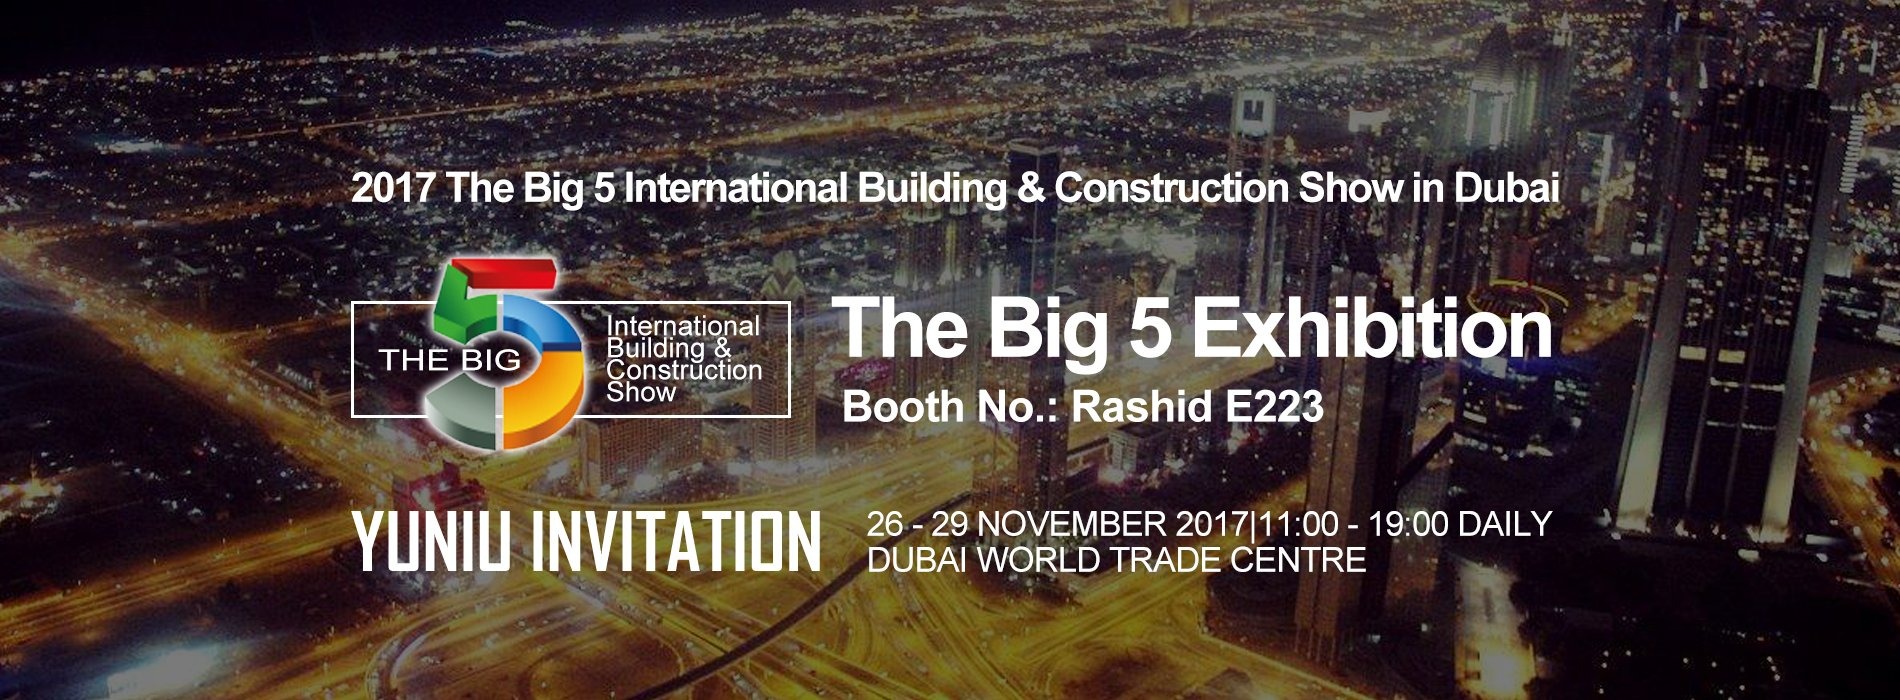 2017 The Big 5 International Building & Construction show in Dubai